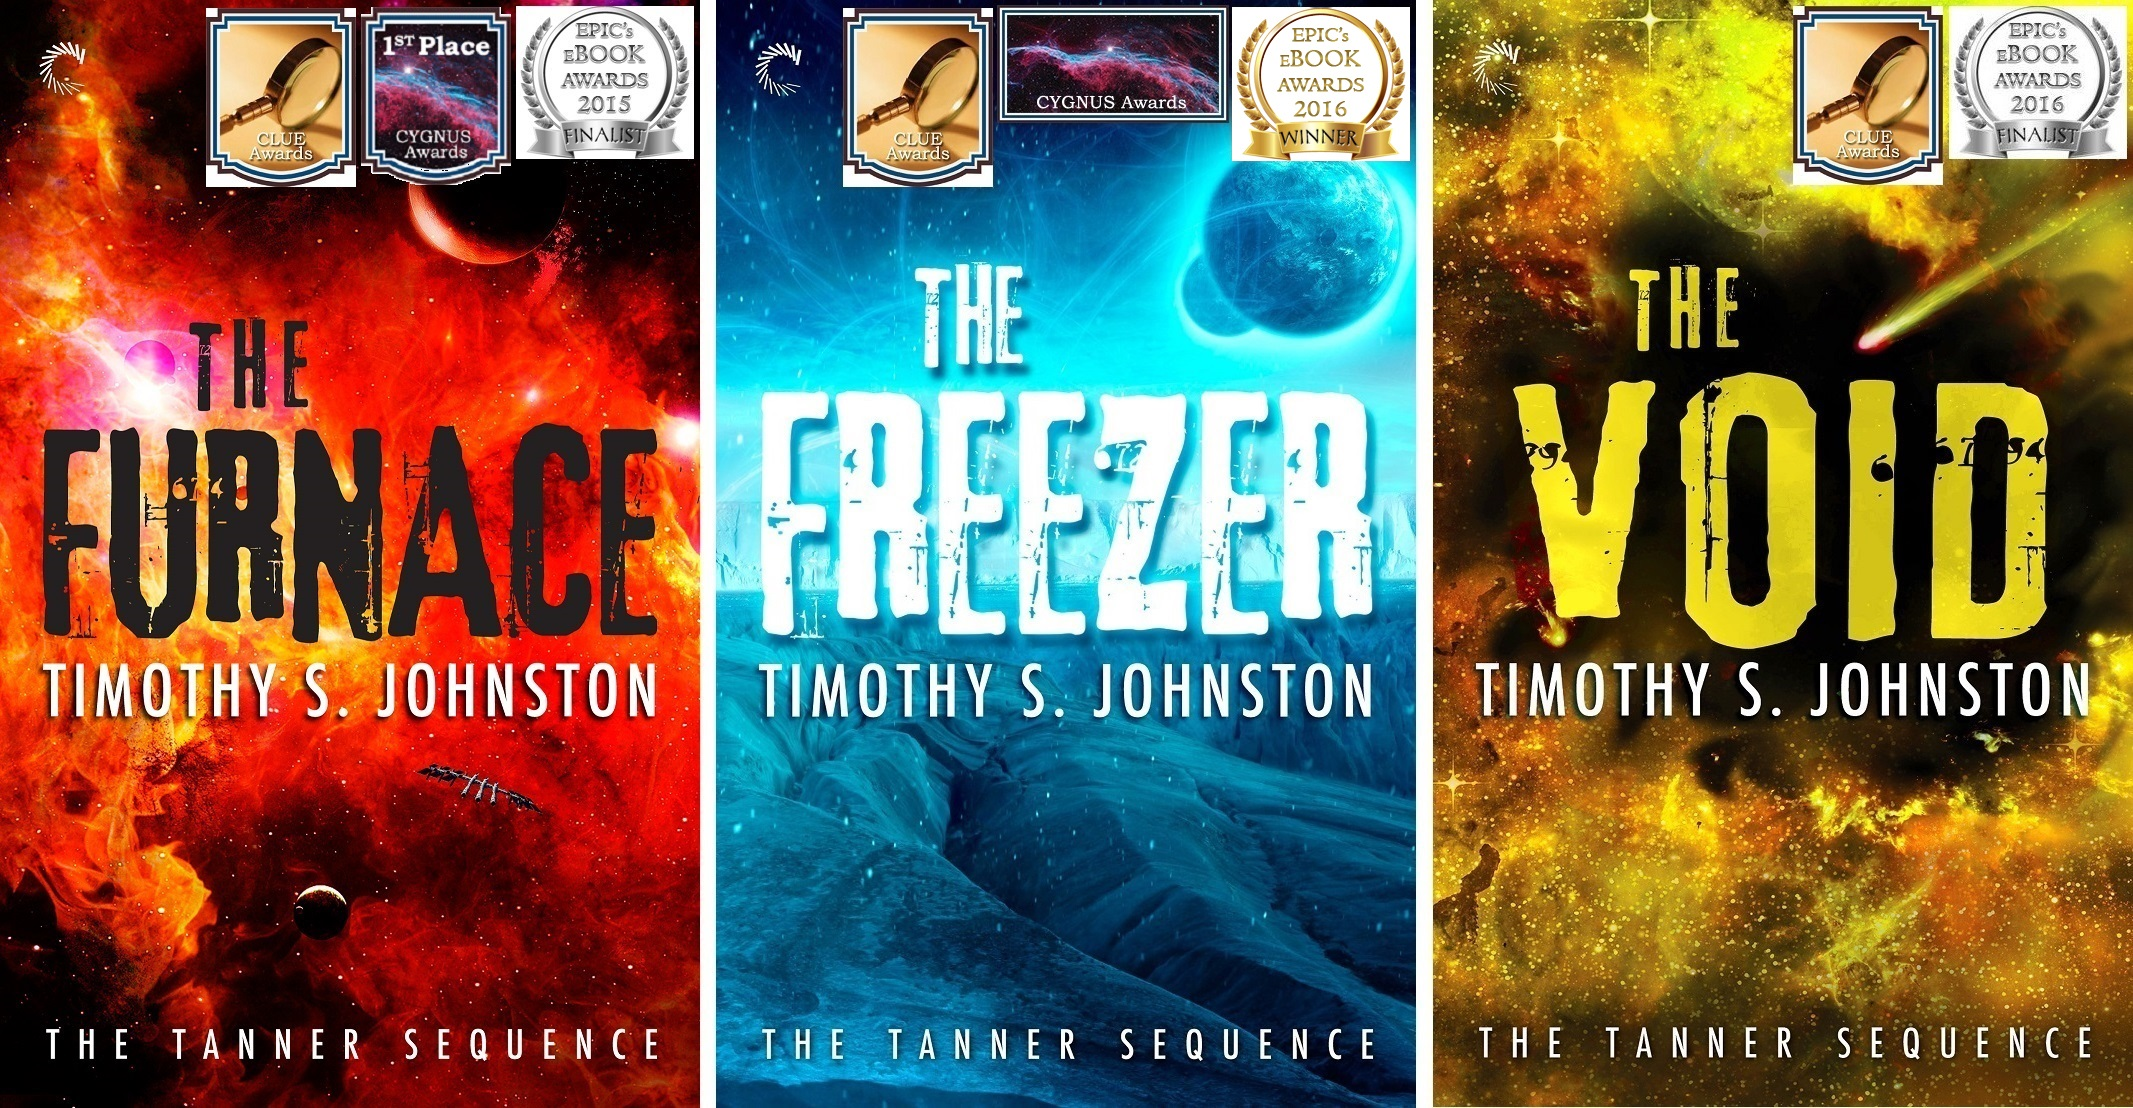 The Tanner Sequence Covers With All Award Logos